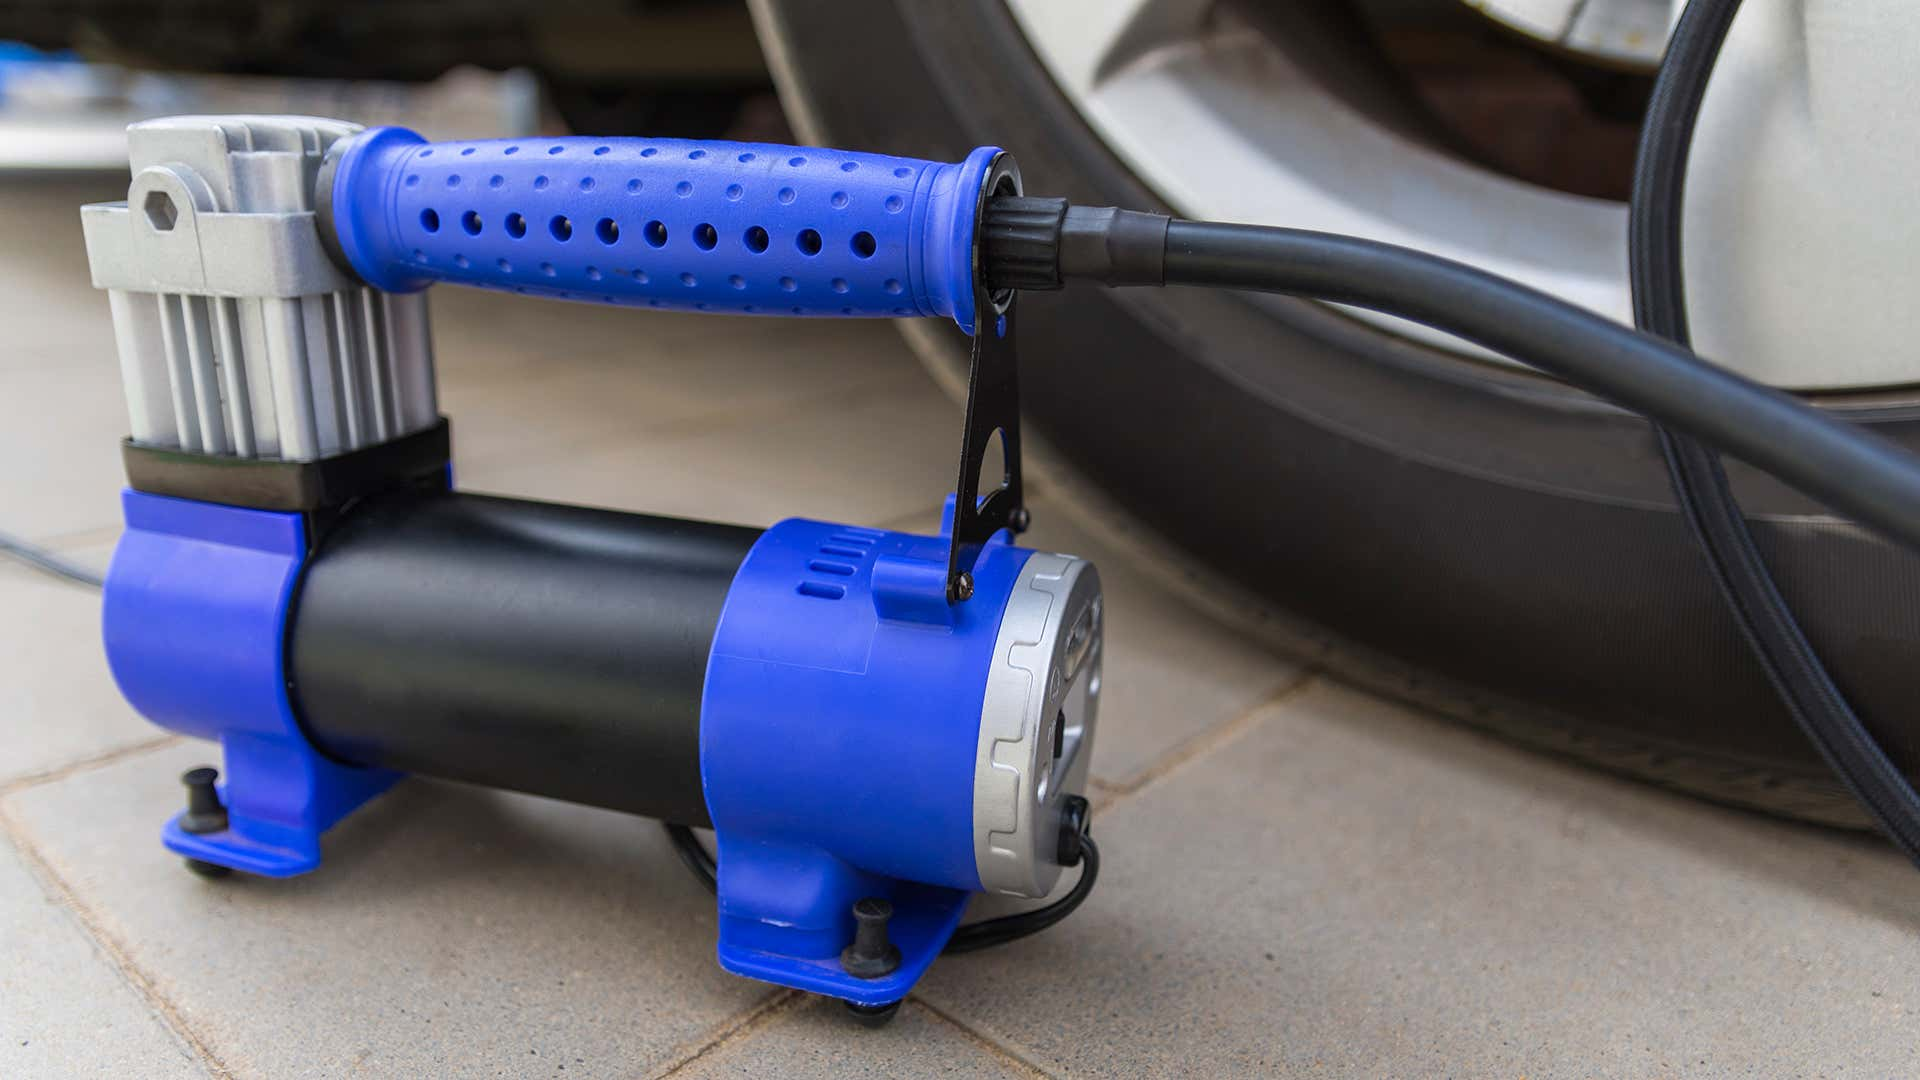 A blue tire inflator next to a wheel.